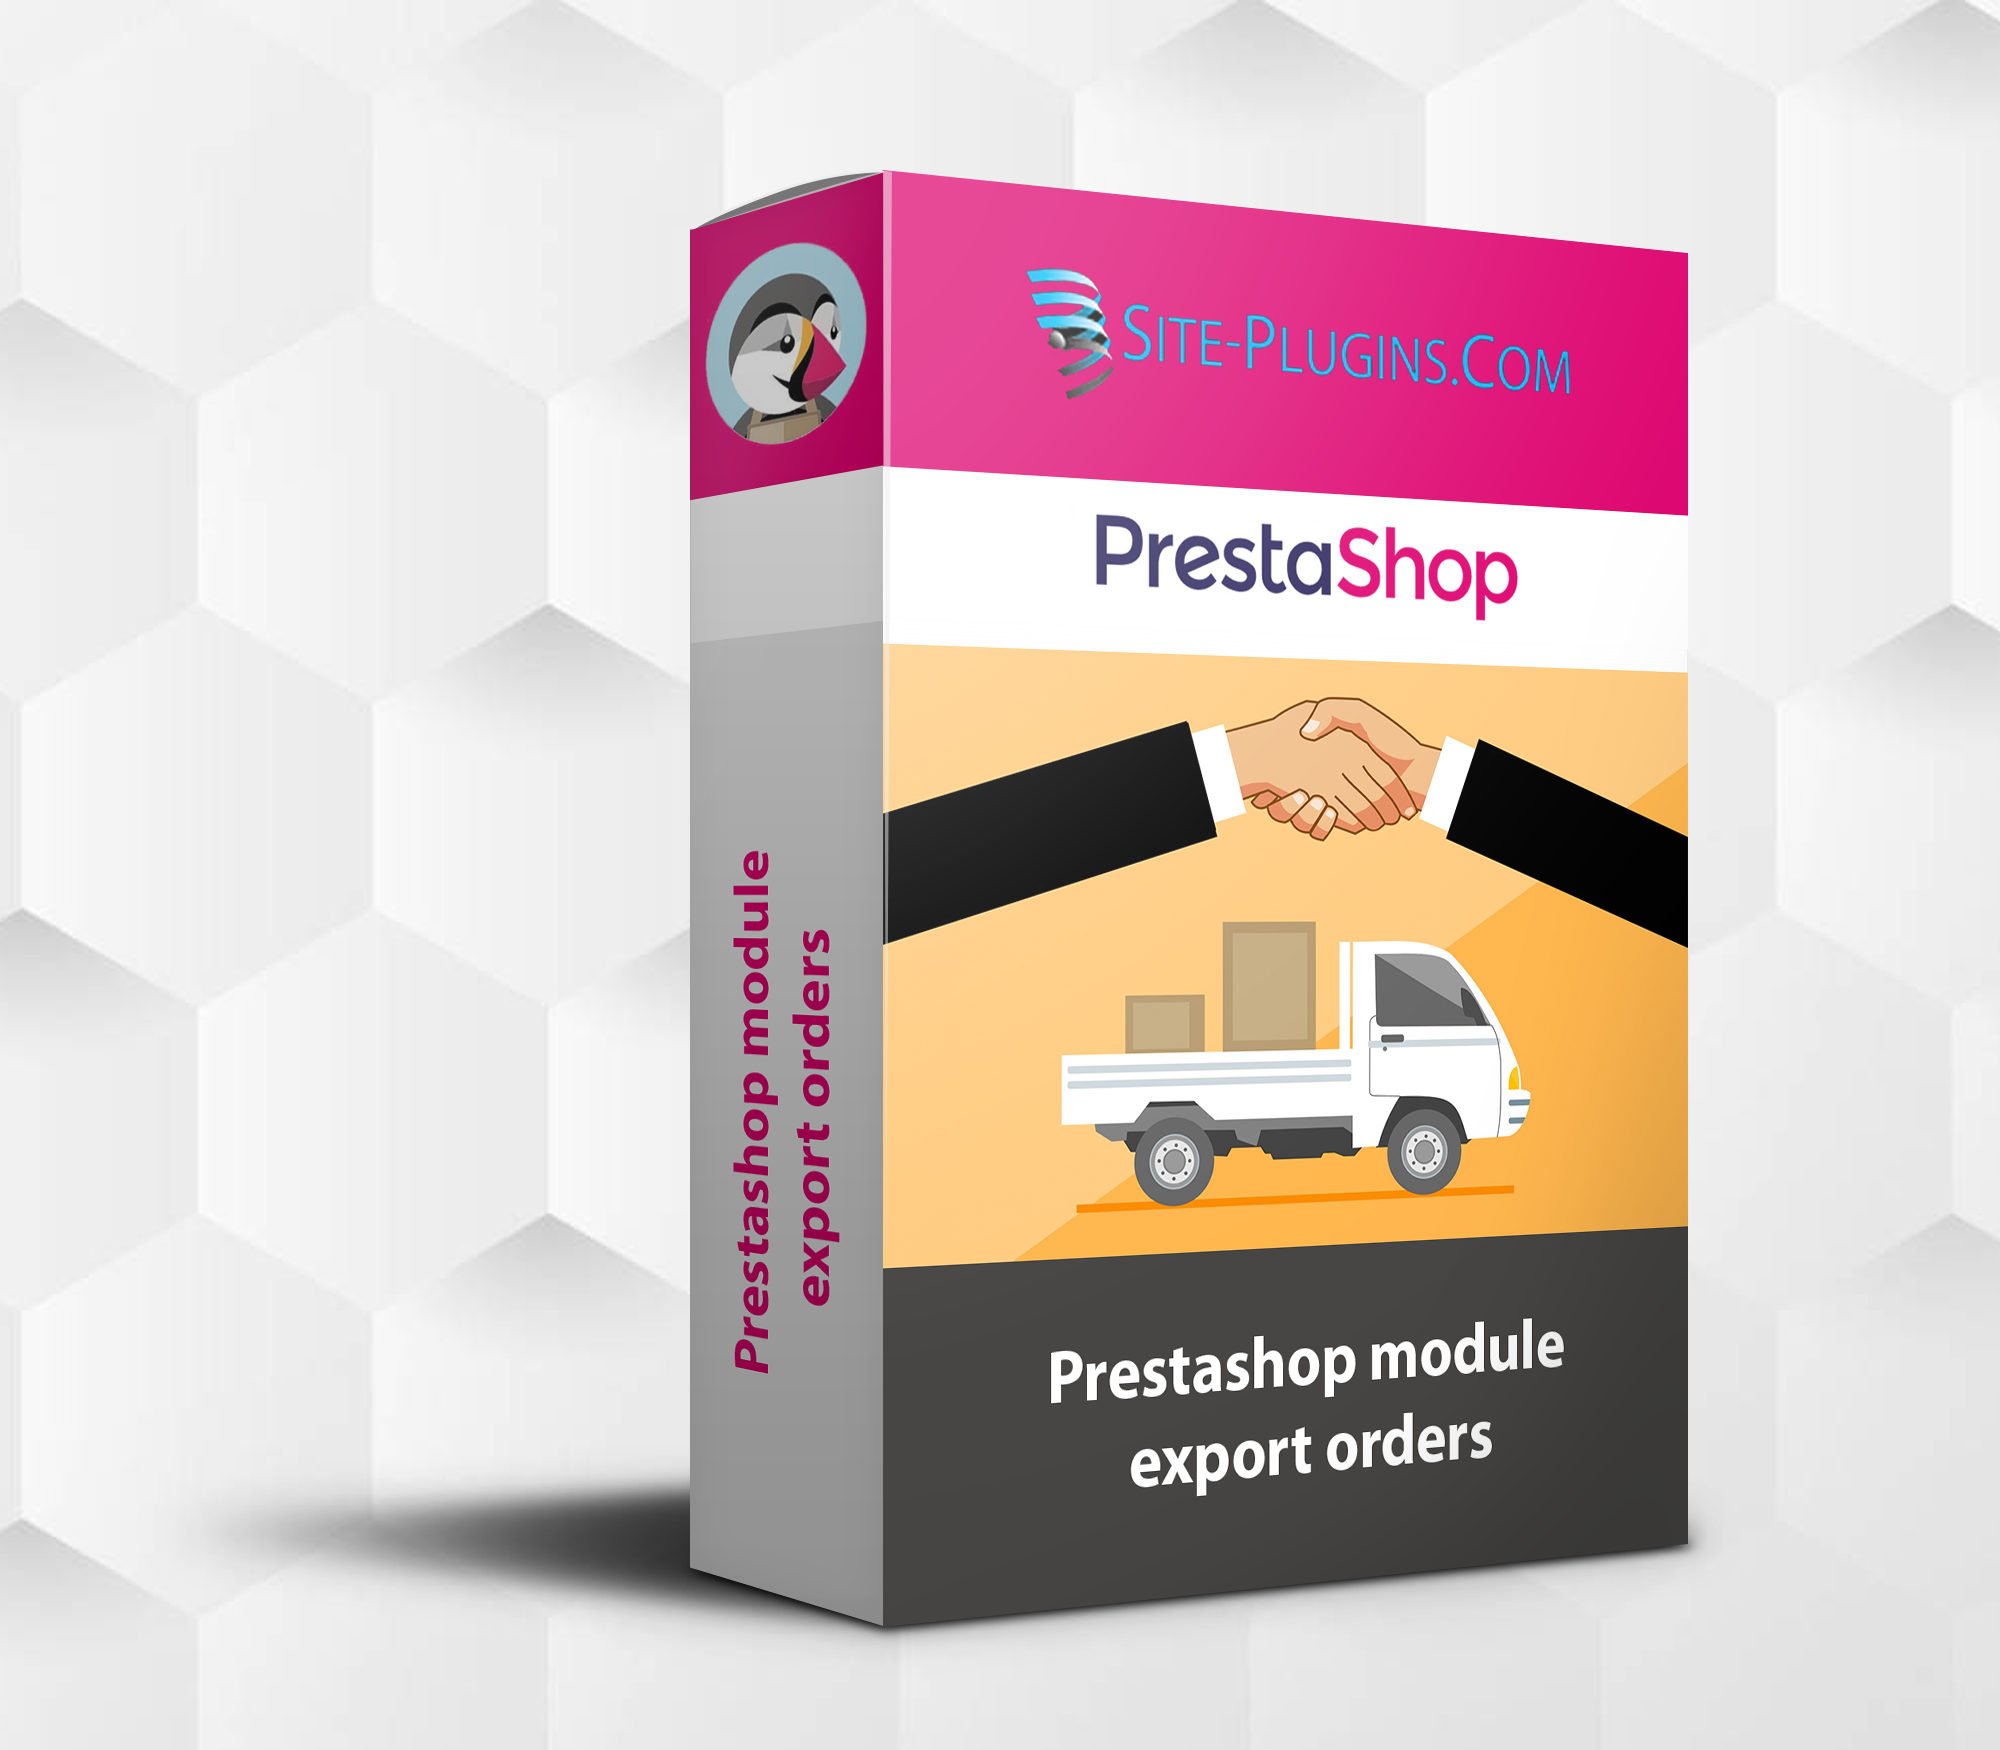 prestashop module export orders